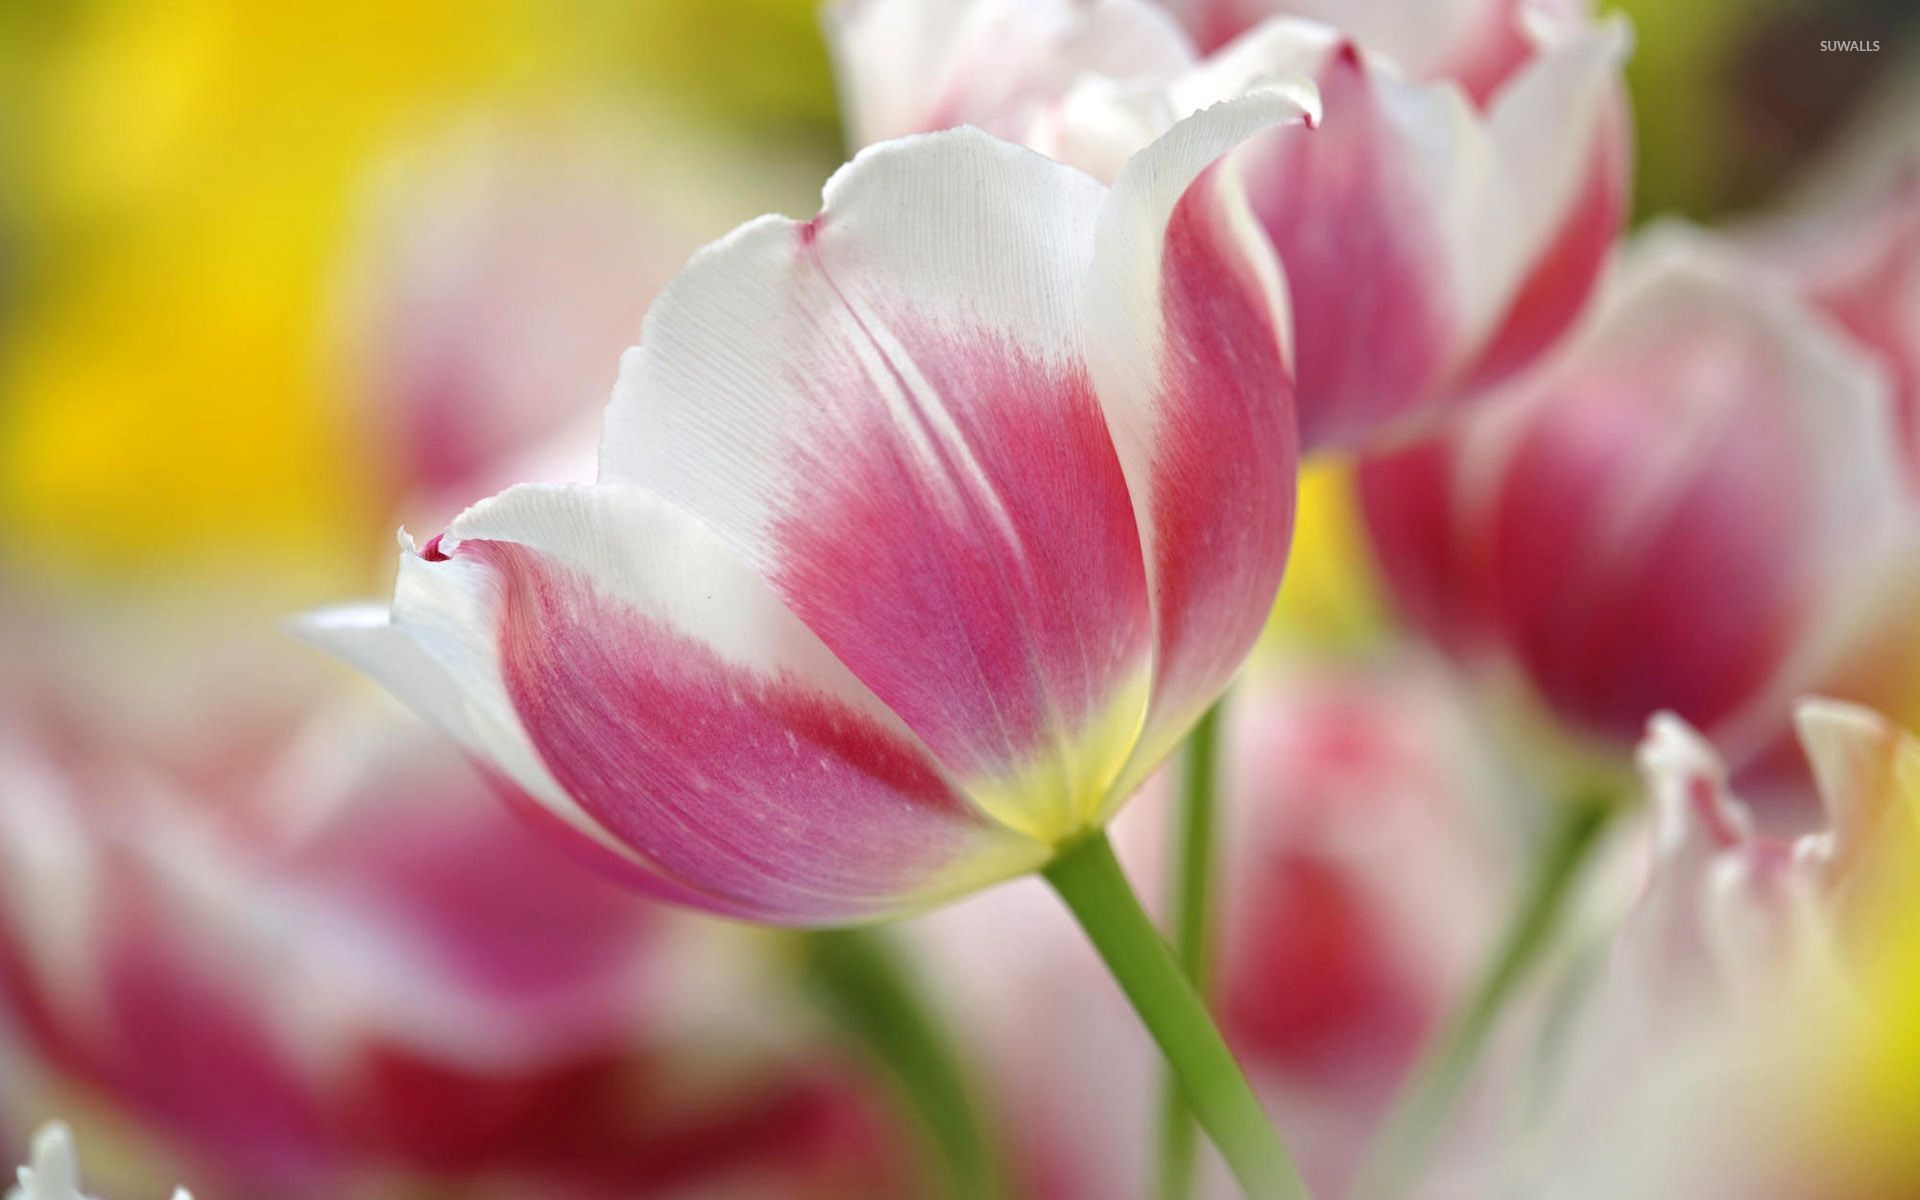 Pink And White Tulips Wallpaper - Pink And White Tulips , HD Wallpaper & Backgrounds